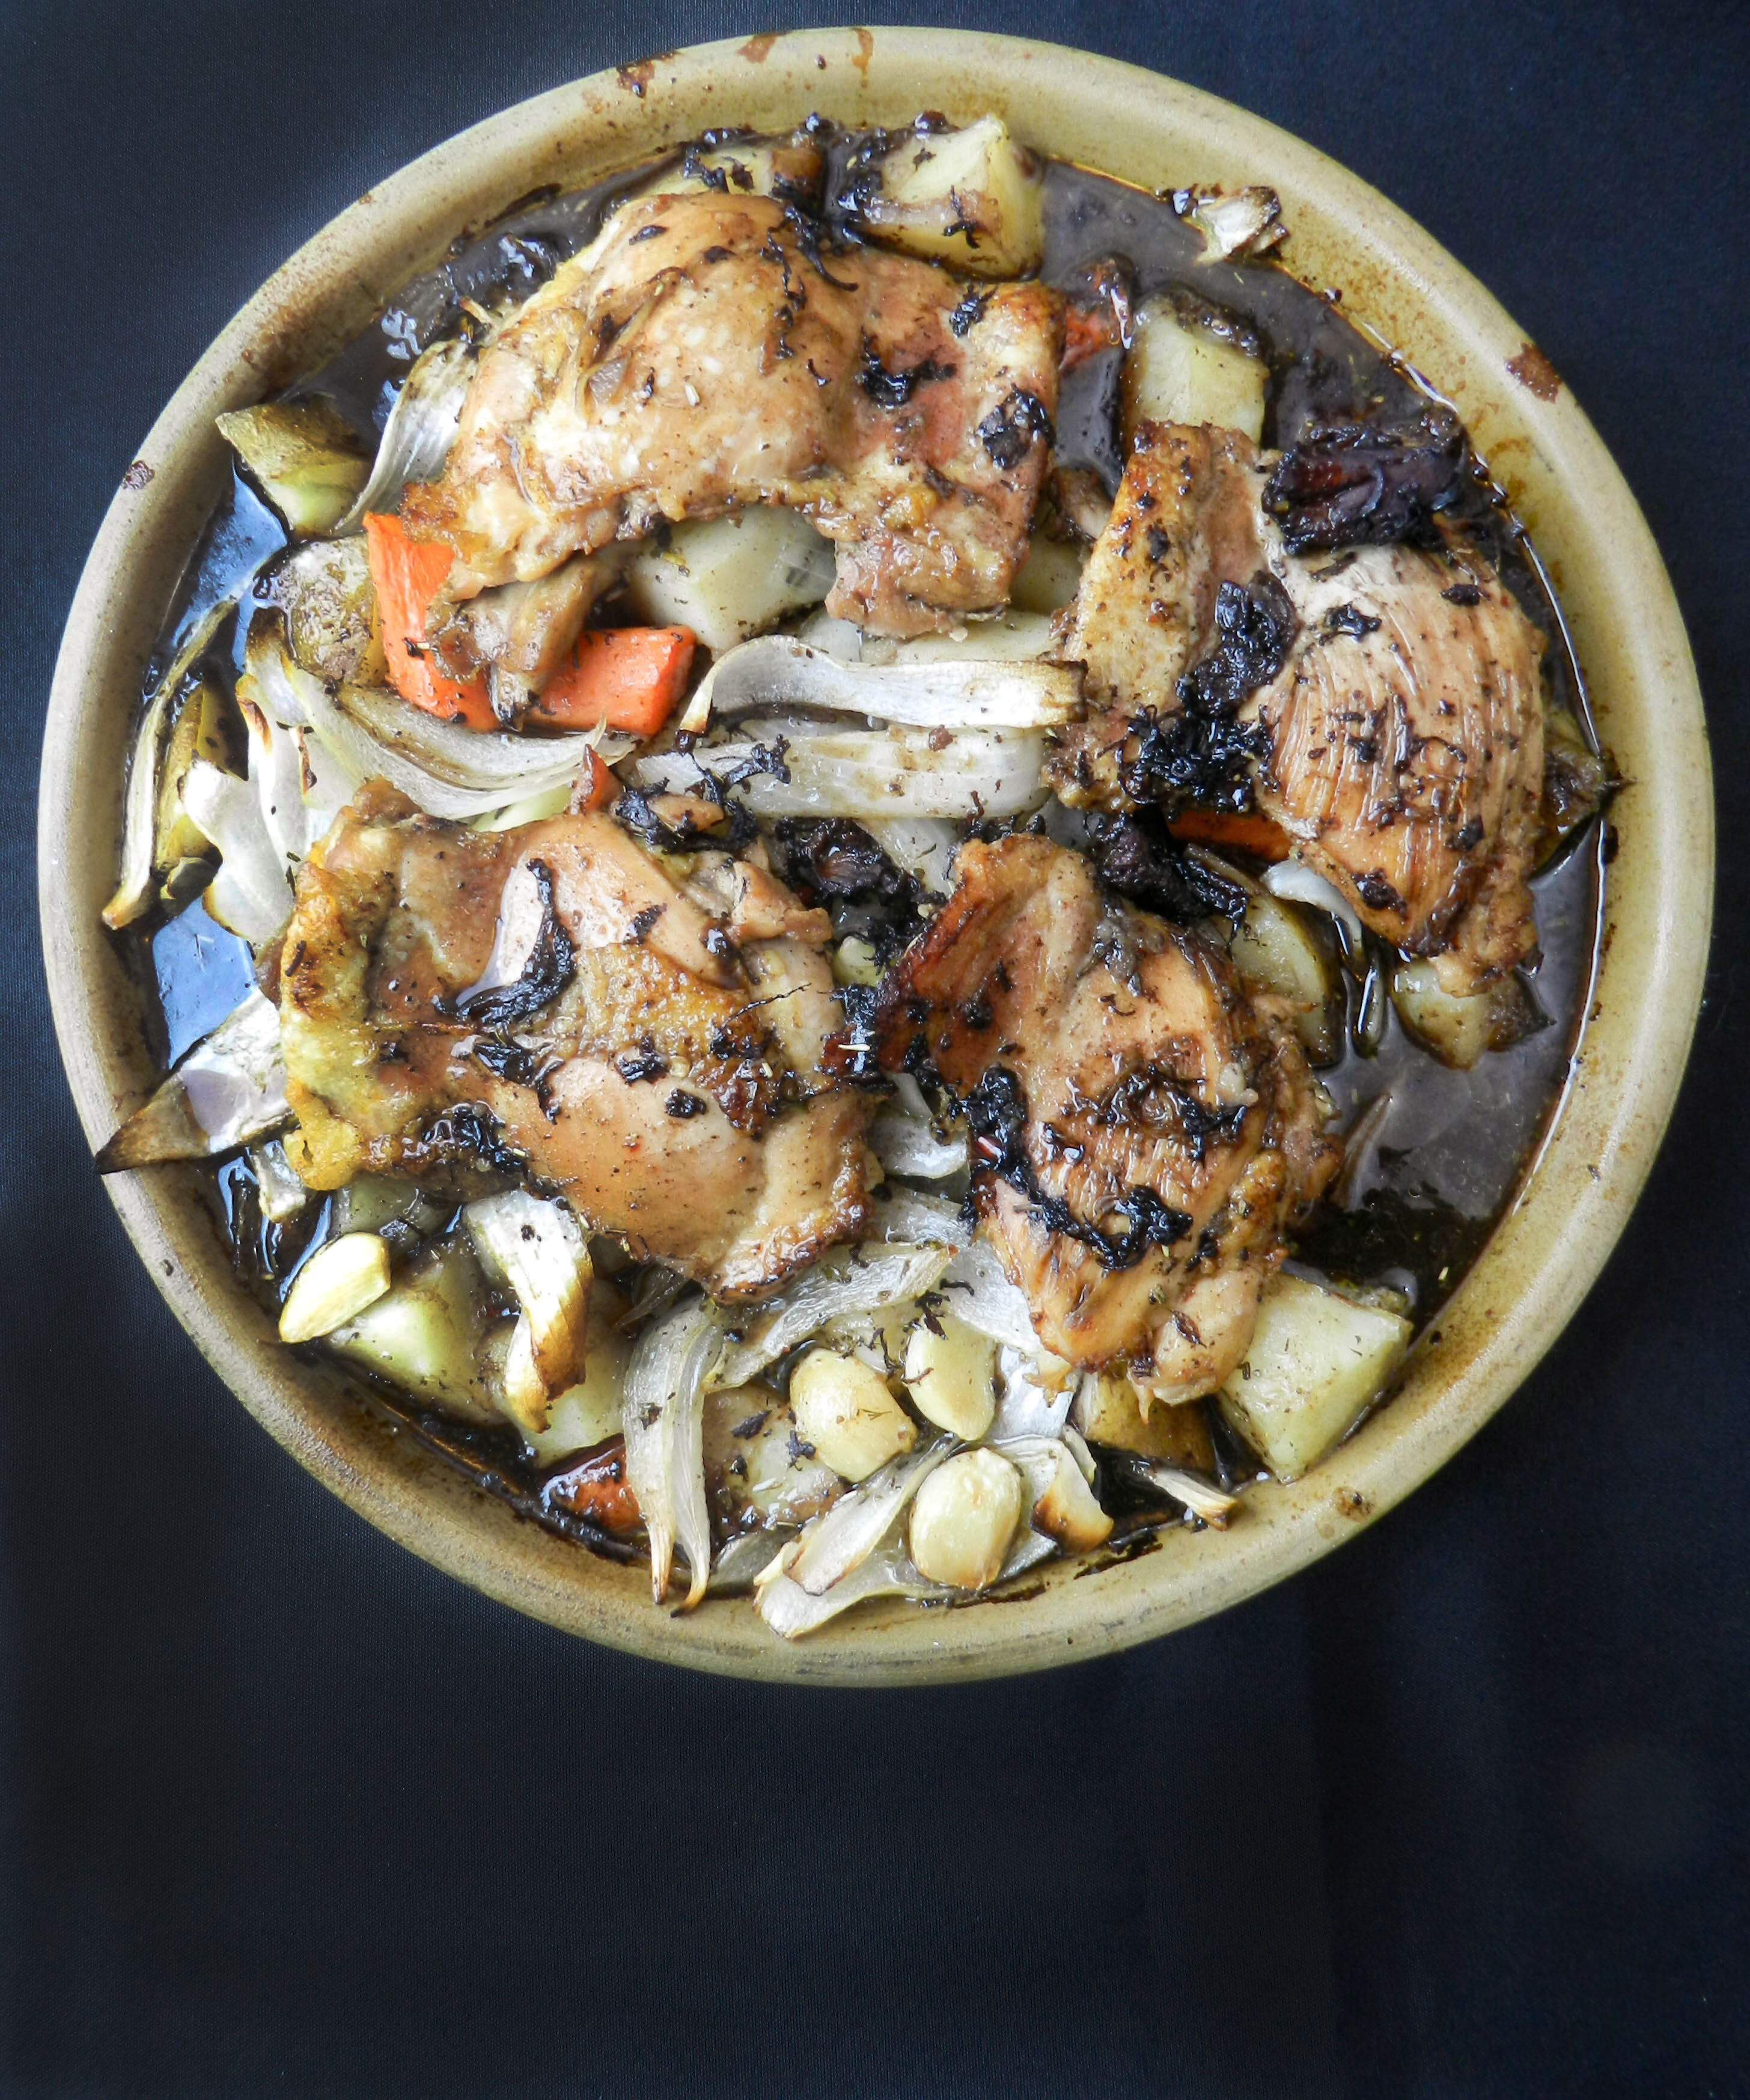 Balsamic Braised Chicken with Roasted Vegetables - Discovery Cooking